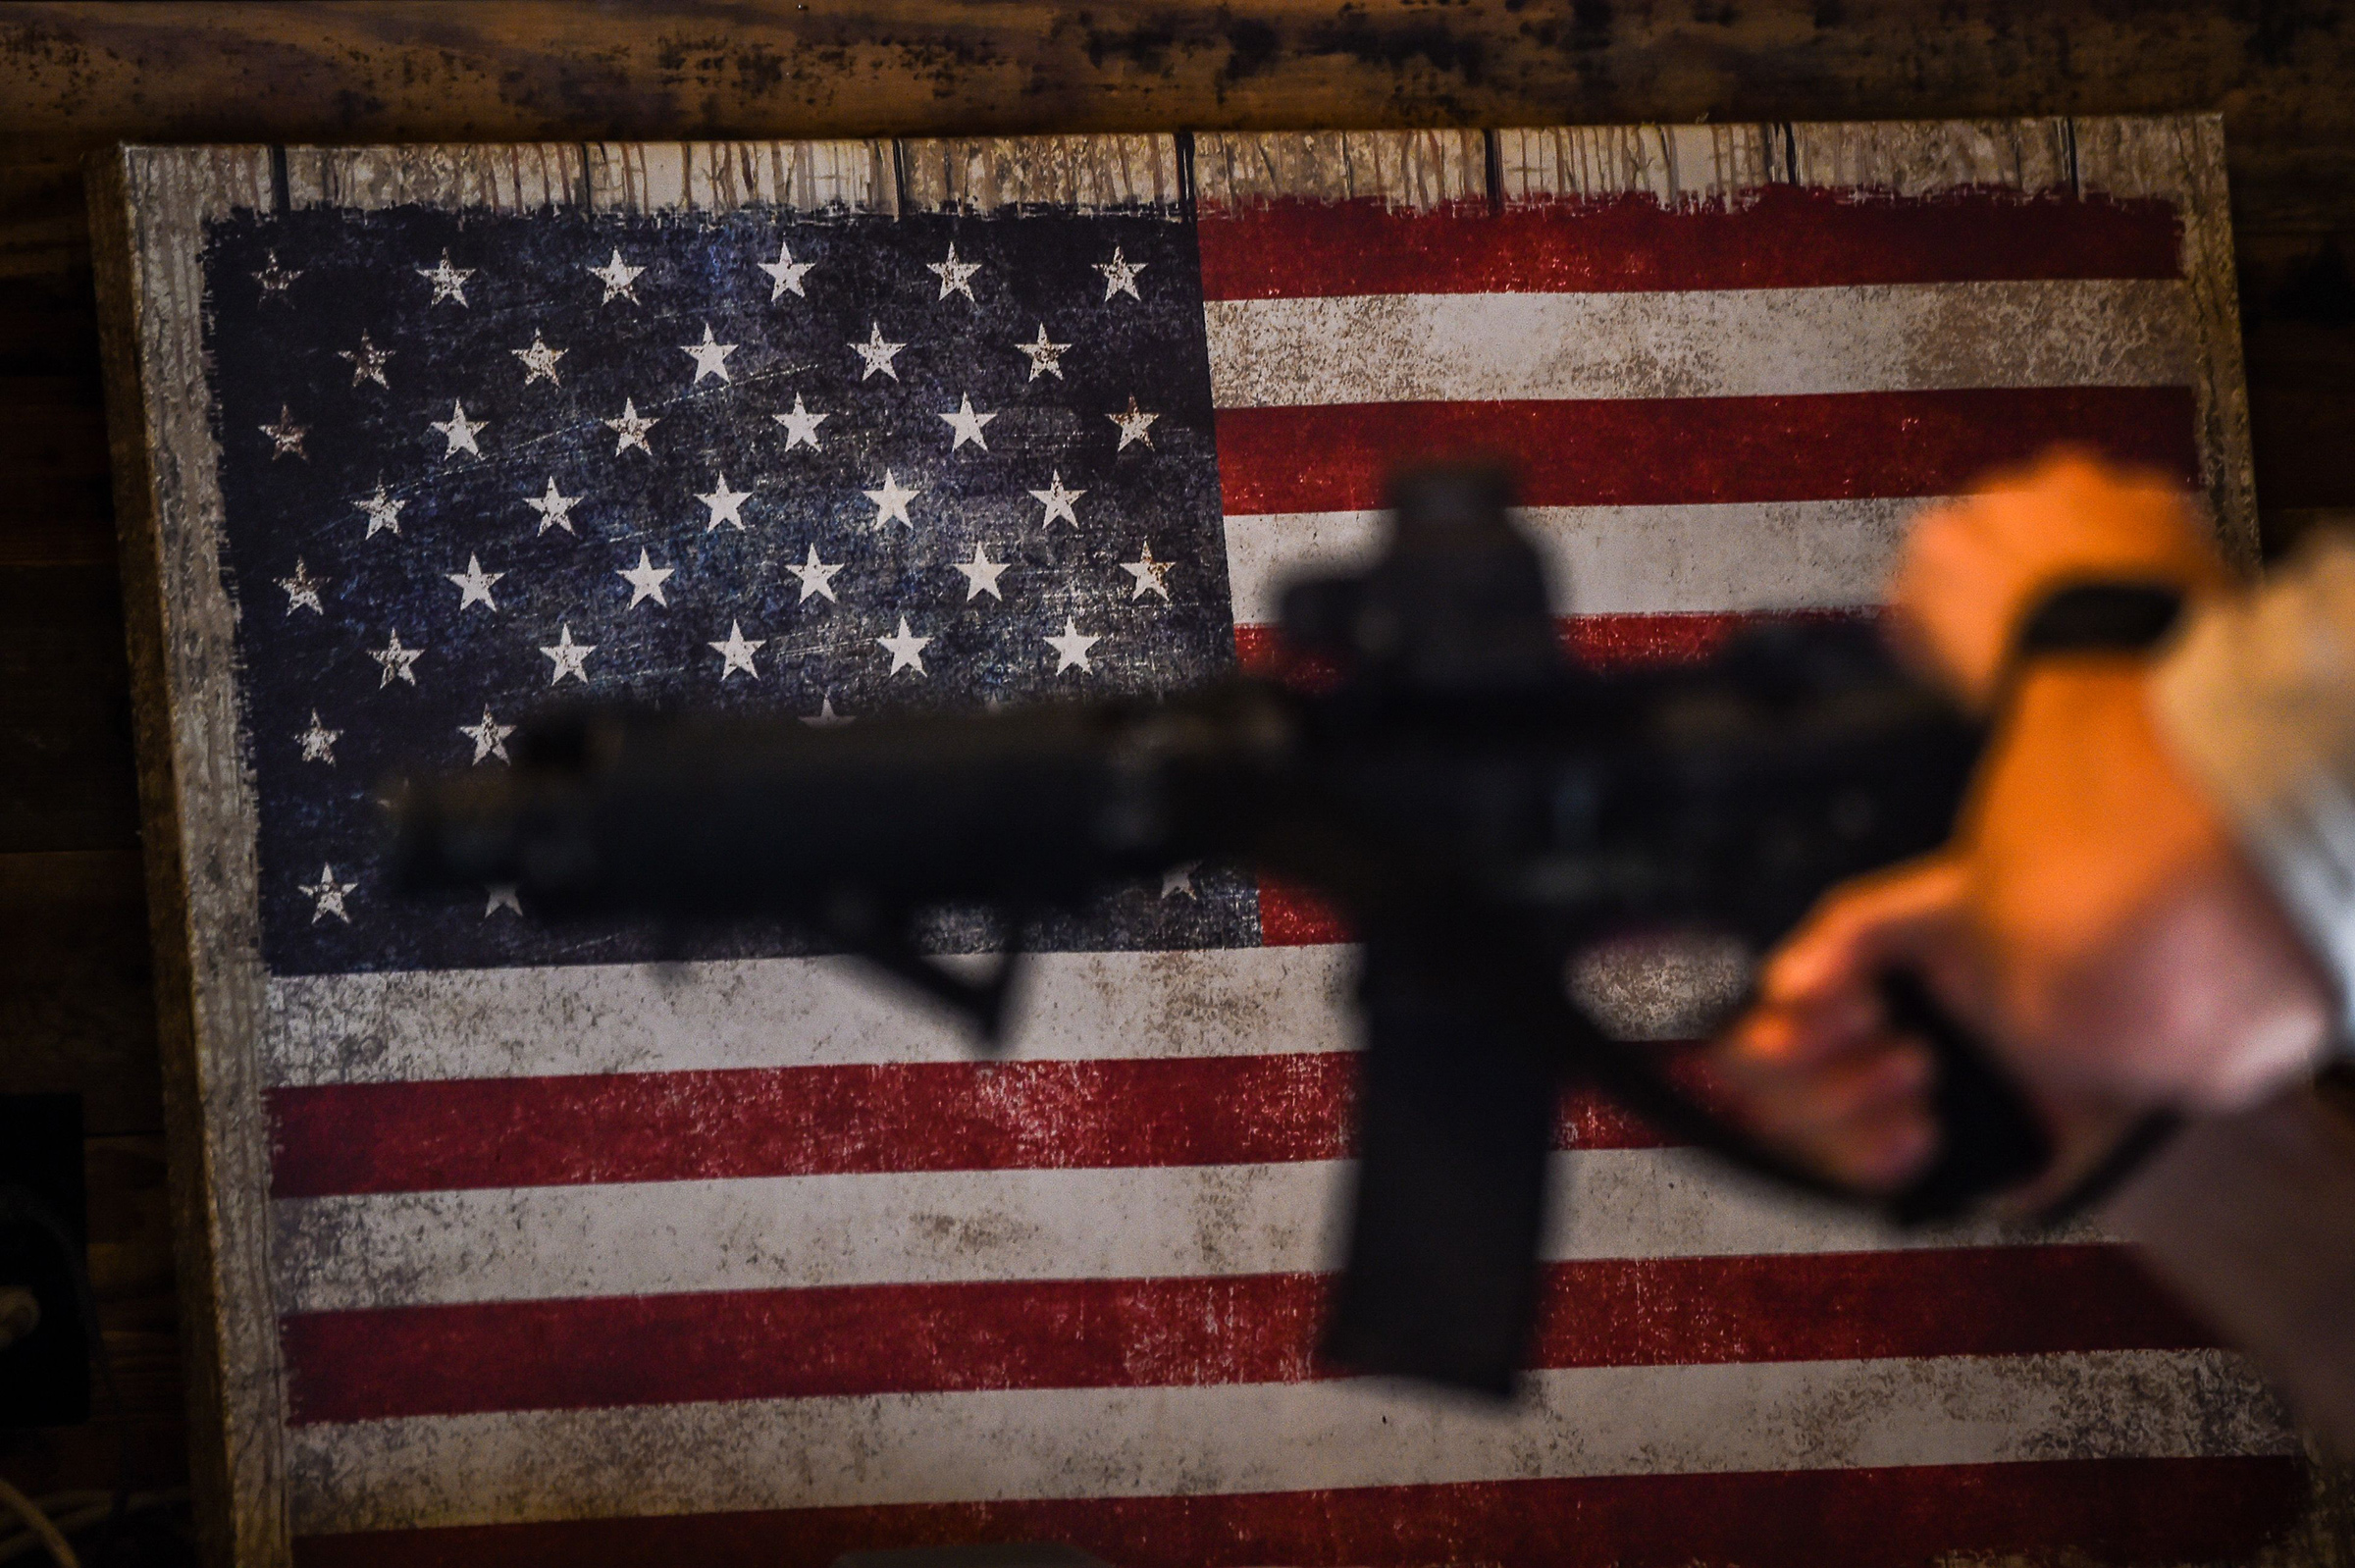 Buying a Gun Ahead of the Election Wont Make You More Powerful. Heres What Americans Should Do to Deal With Crisis Instead